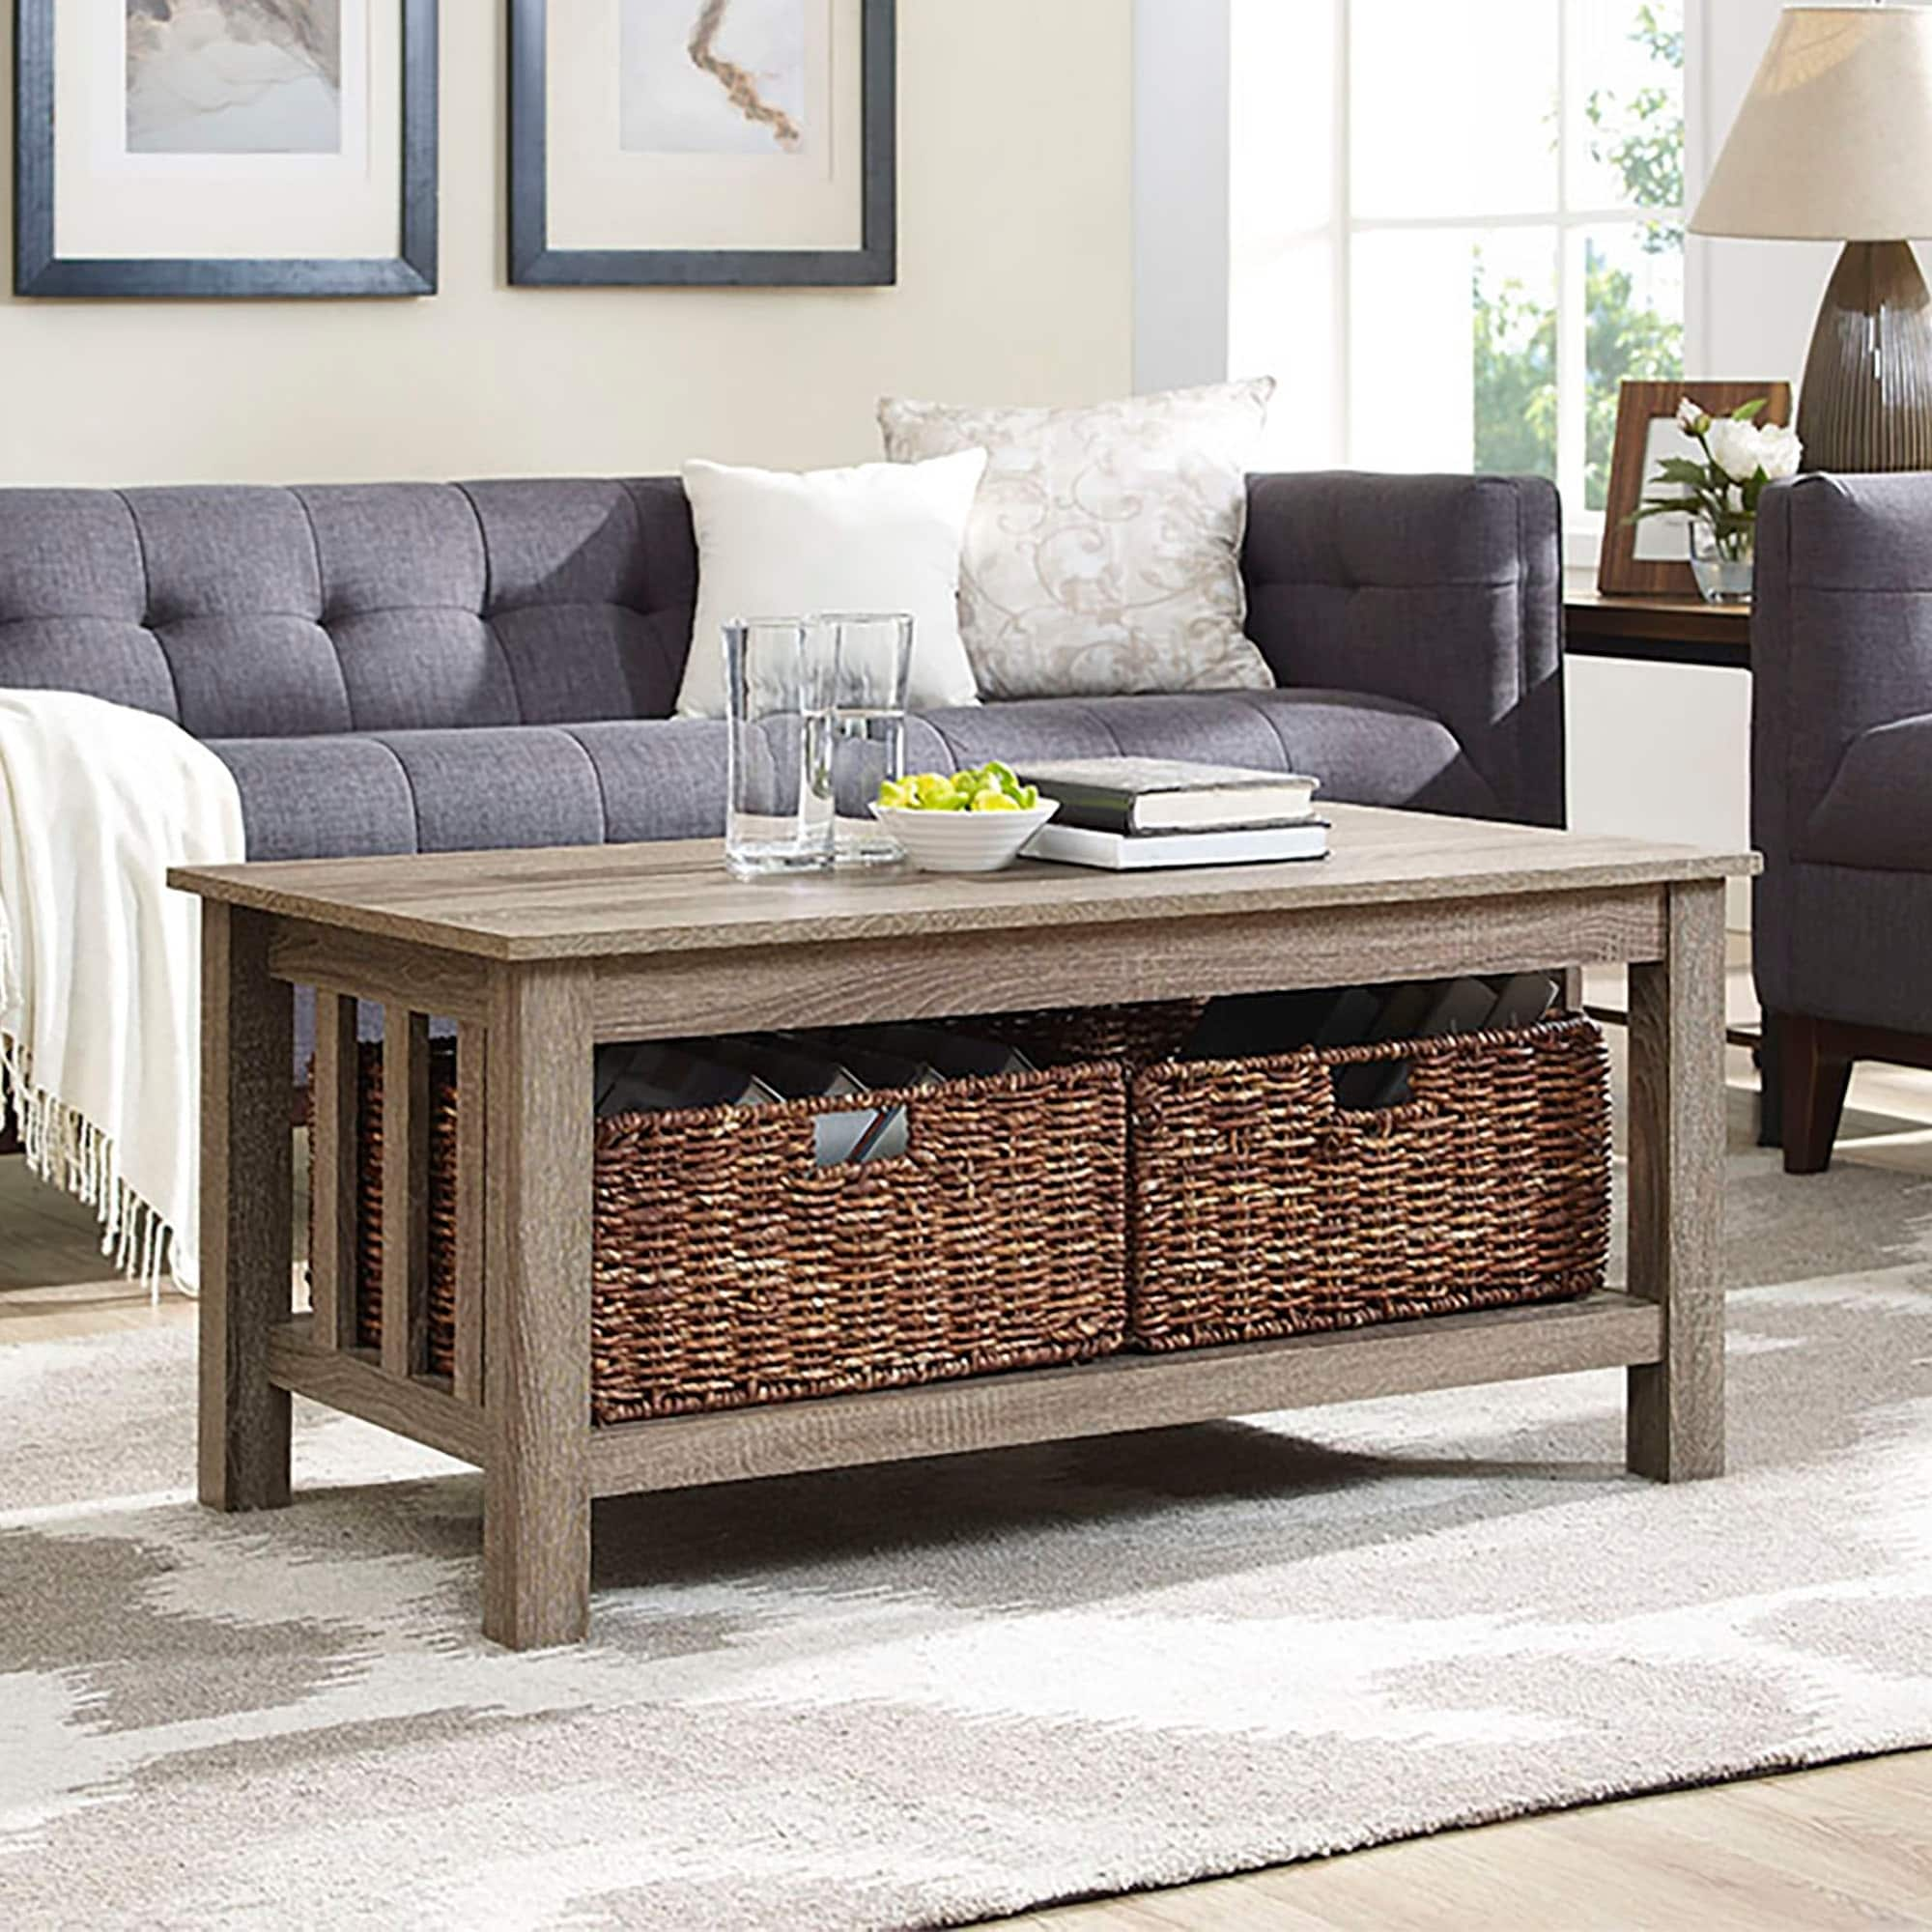 Middlebrook Designs 40-inch Coffee Table with Wicker Storage Baskets,  Driftwood, Rustic Living Room Table